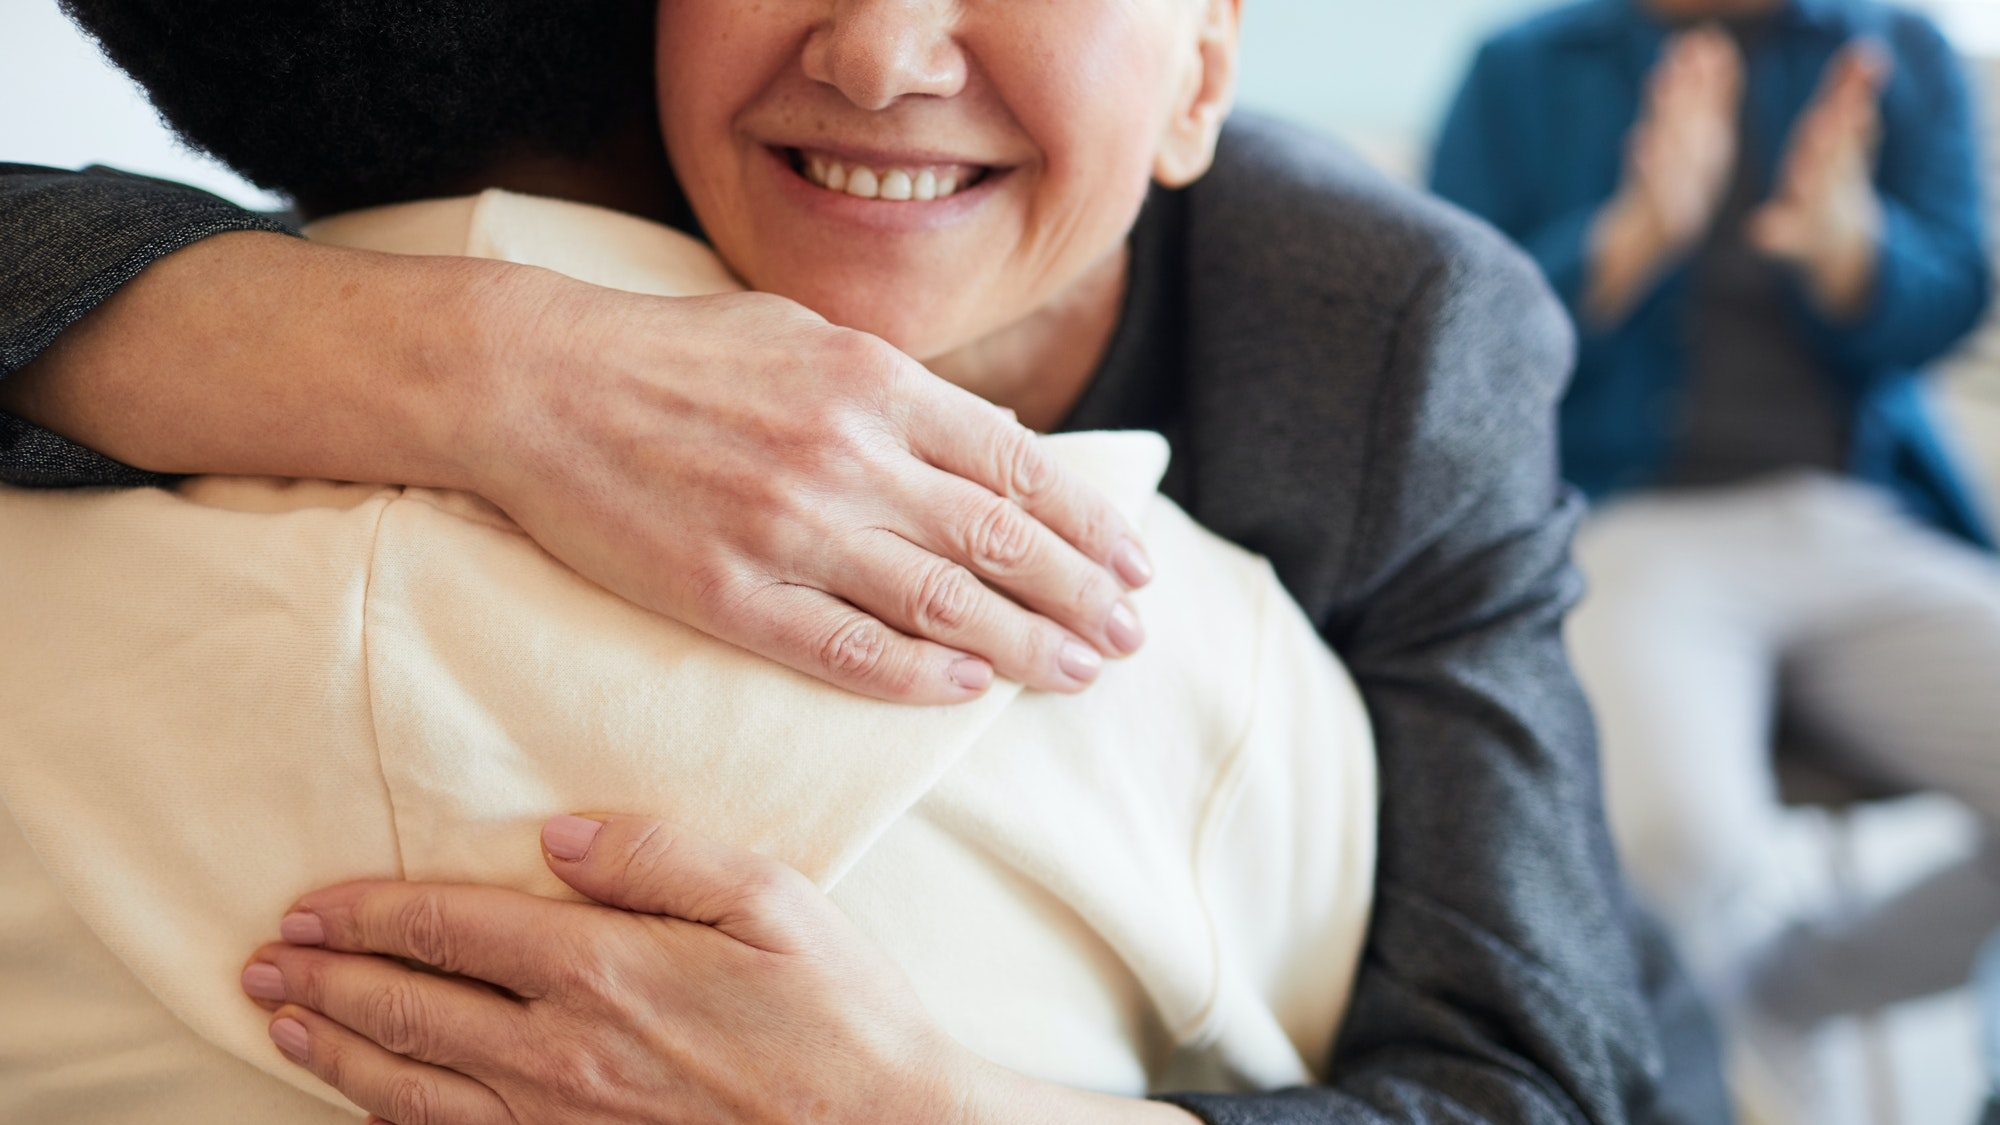 Smiling Psychologist Embracing Patient in Support Group